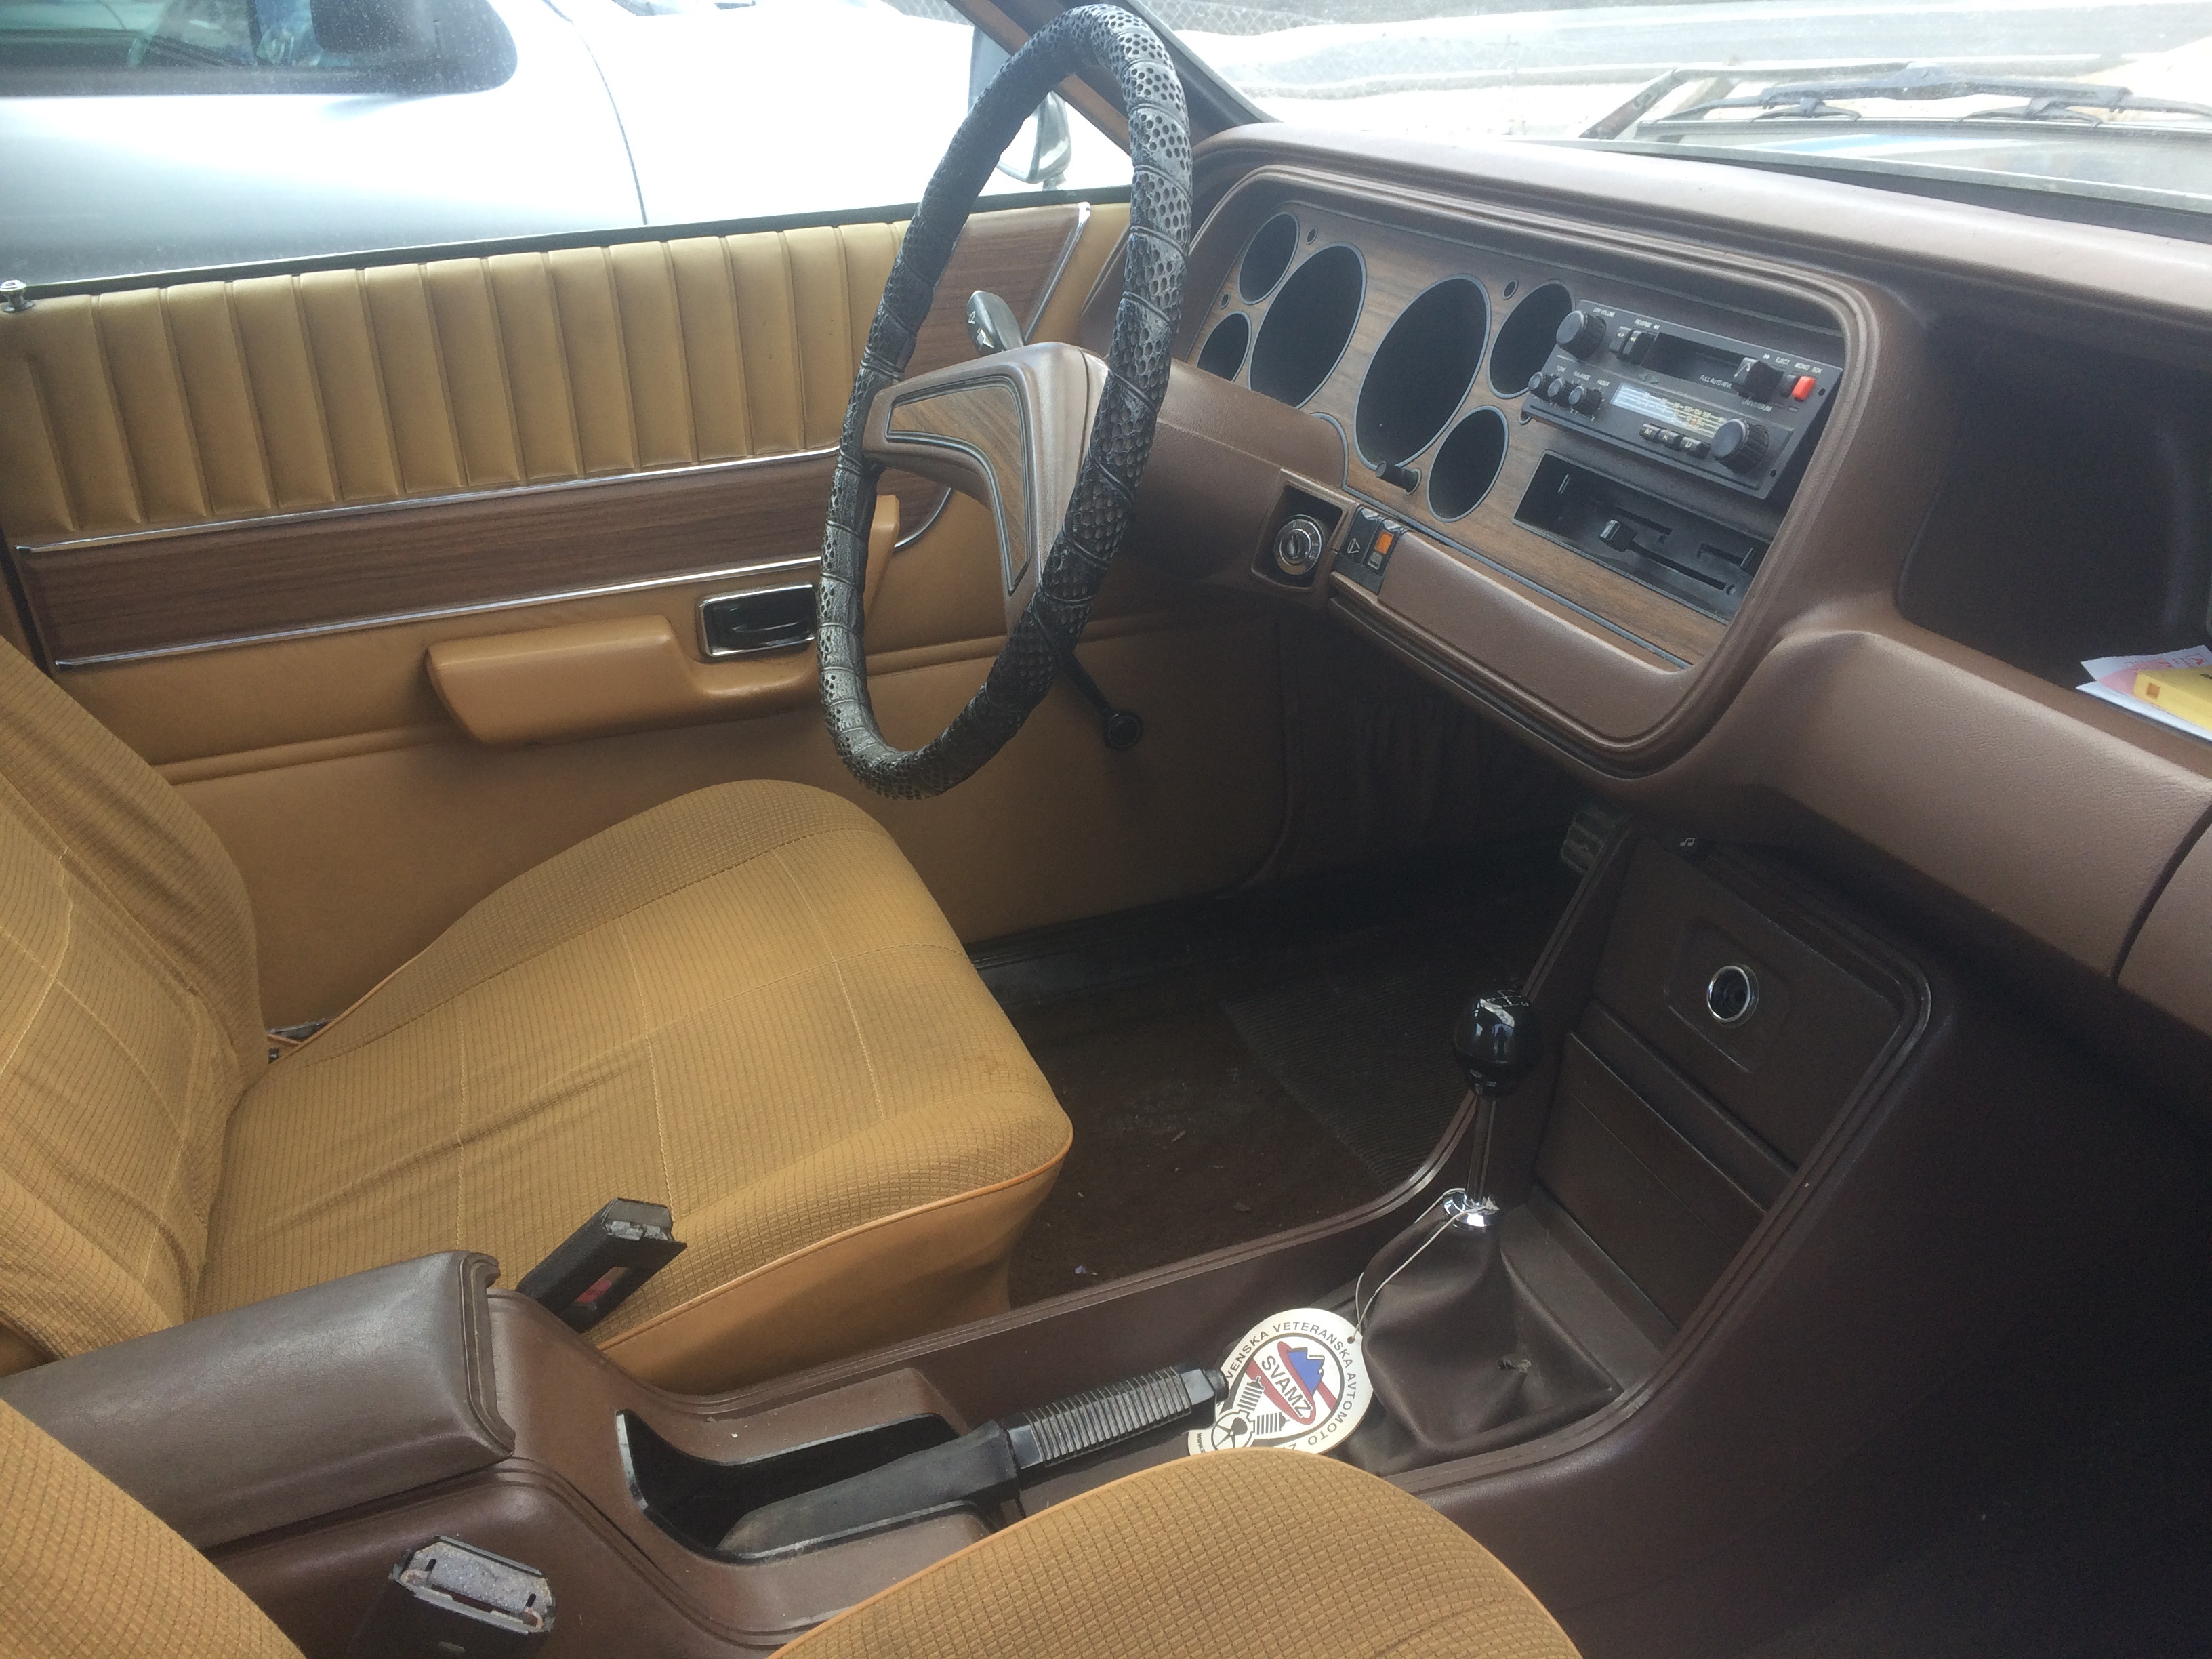 1976 Ford Granada 2300 Driver Seat And Dash Driven To Write